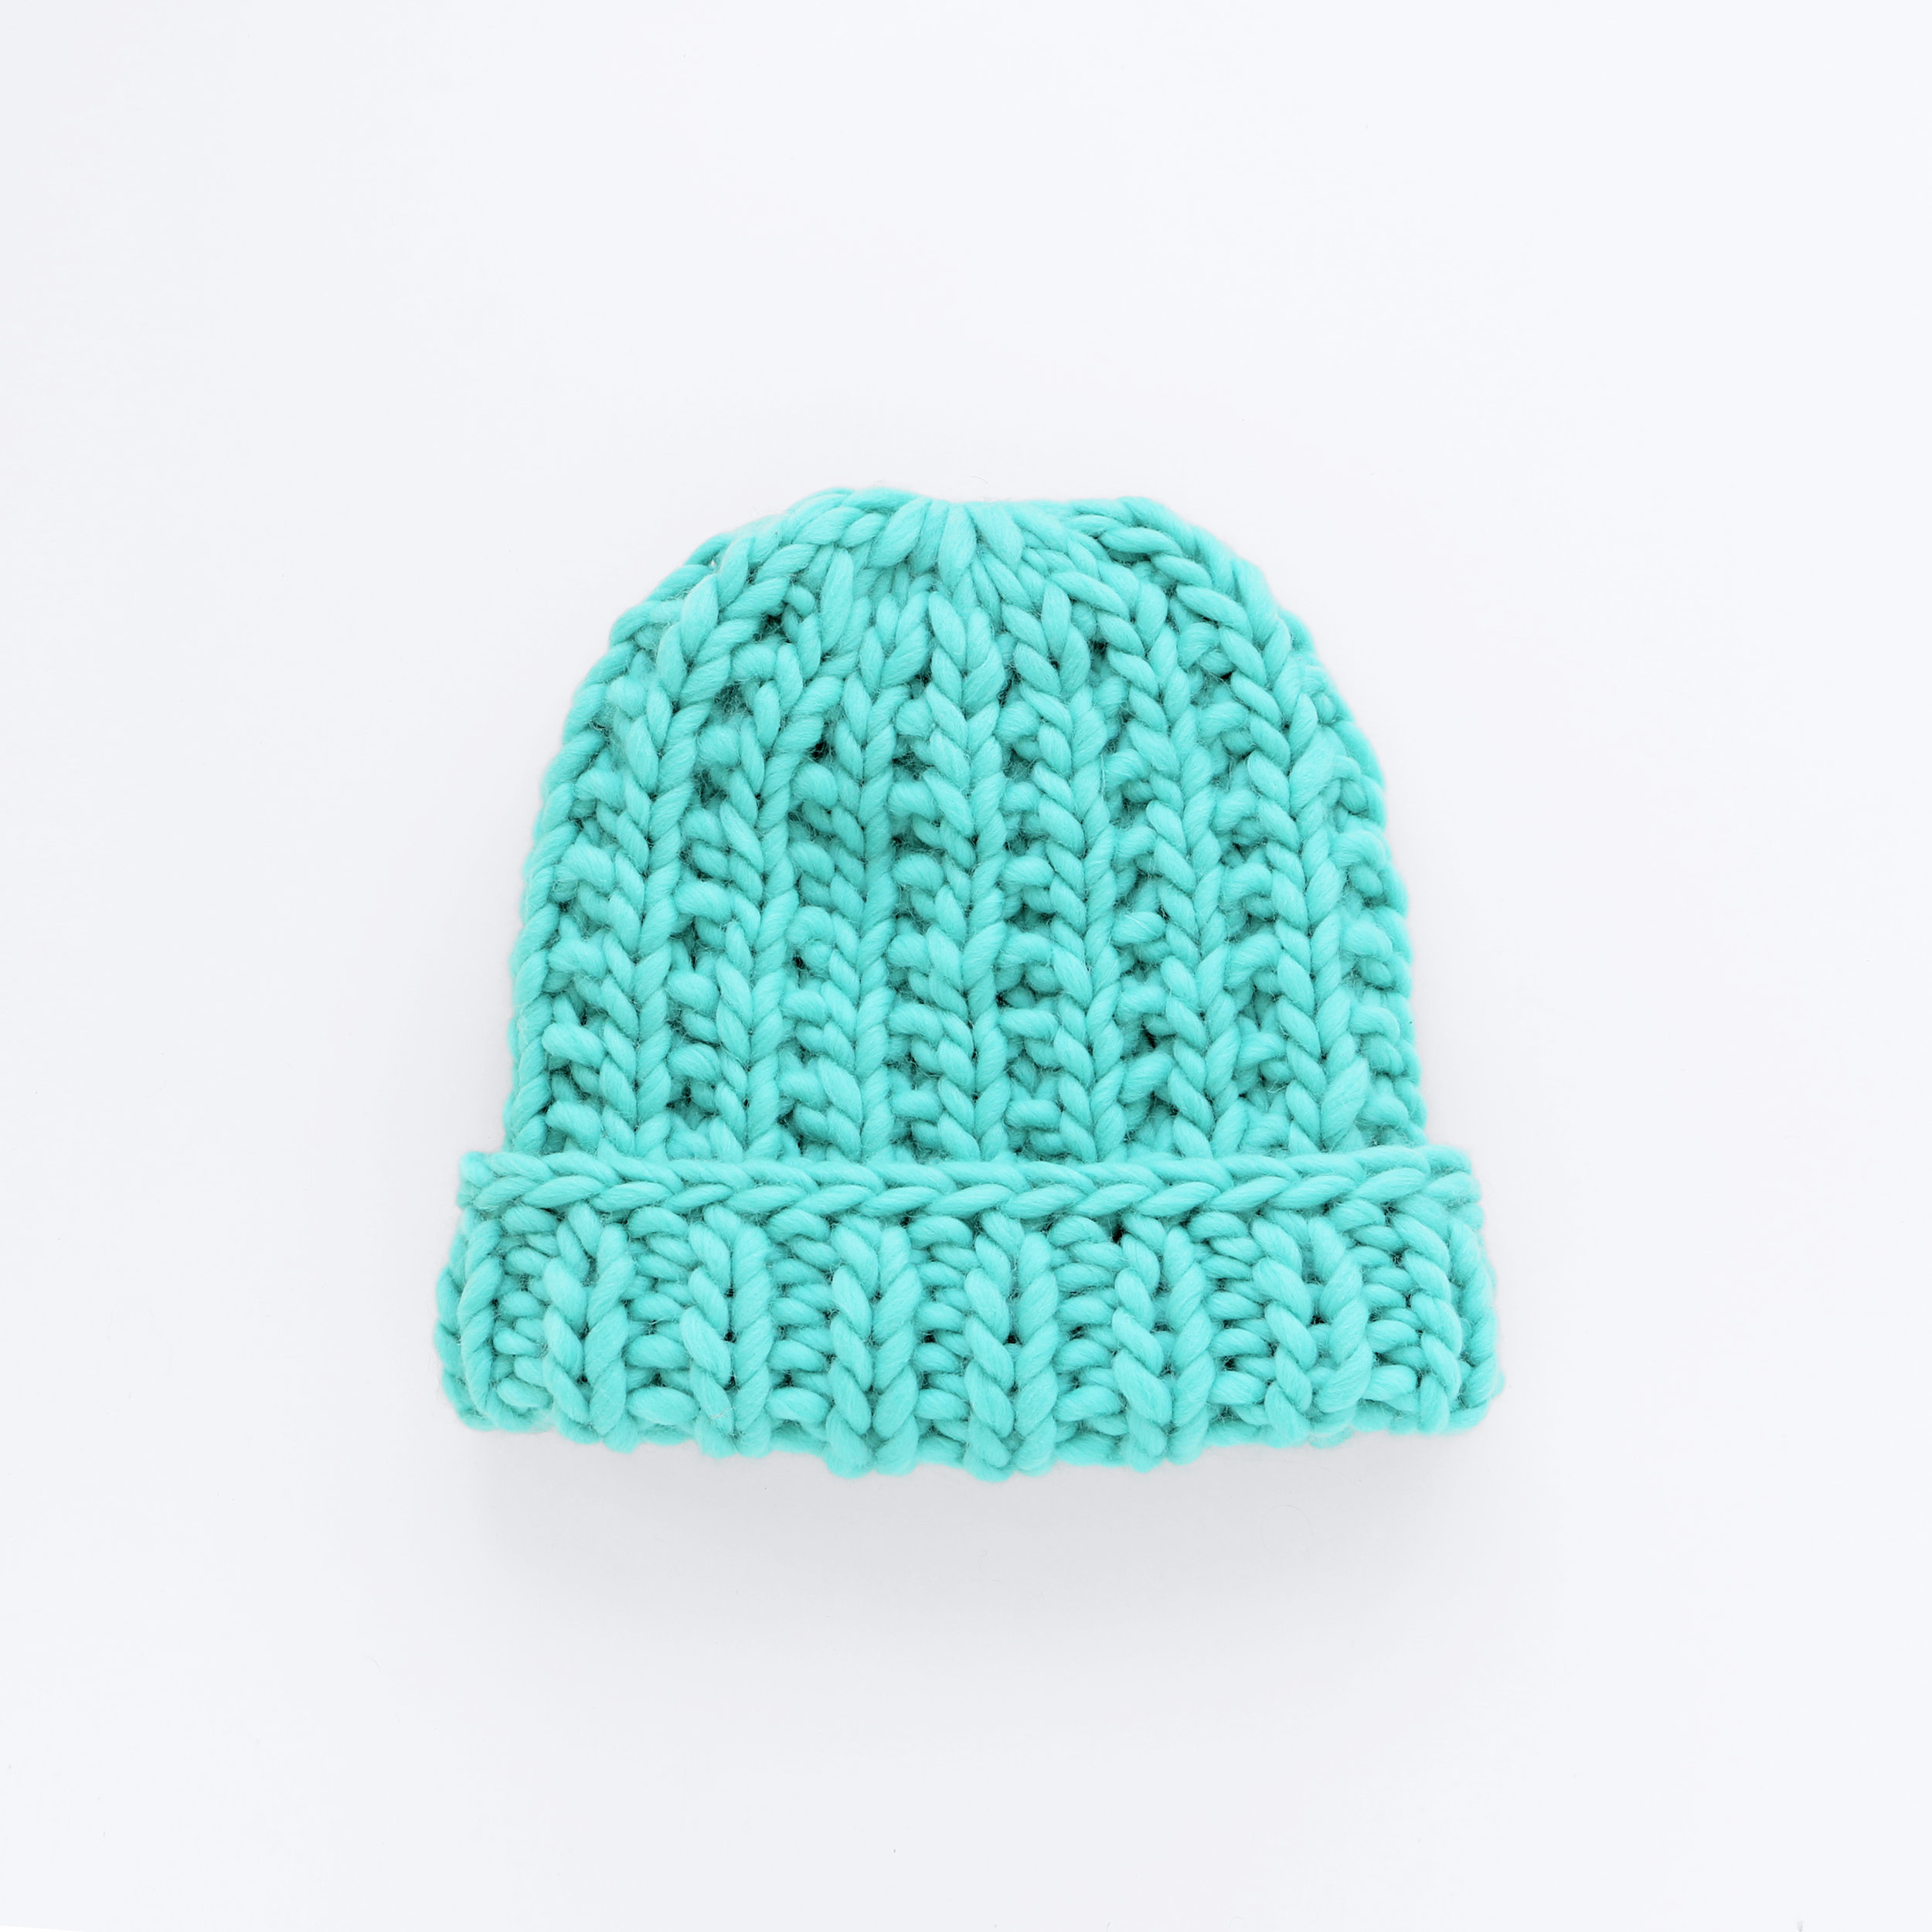 BIGGITY BEANIE - Aquatic